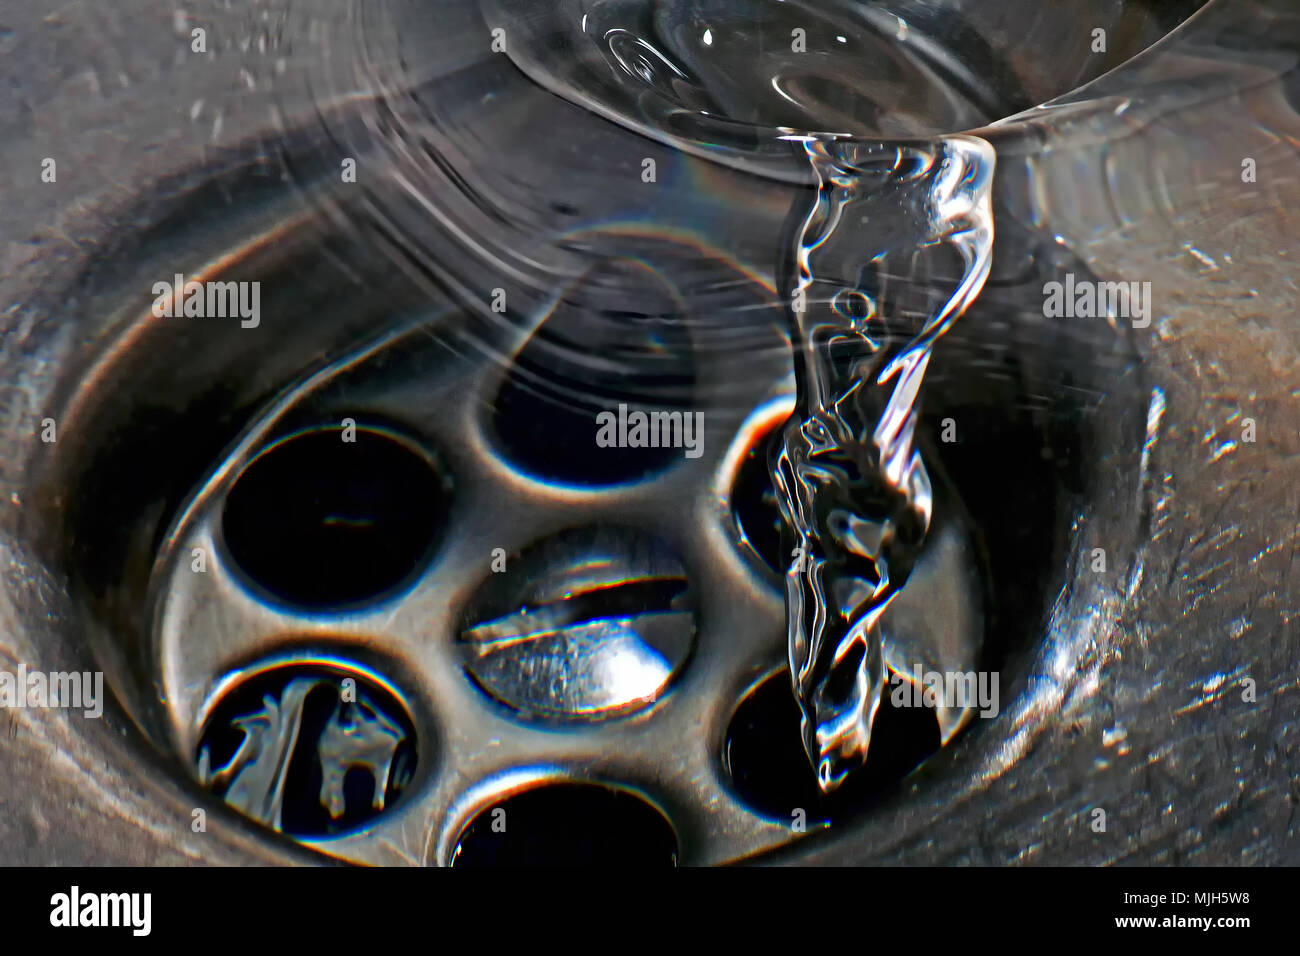 Water spiralling down the plughole in a stainless steel sink. Stock Photo